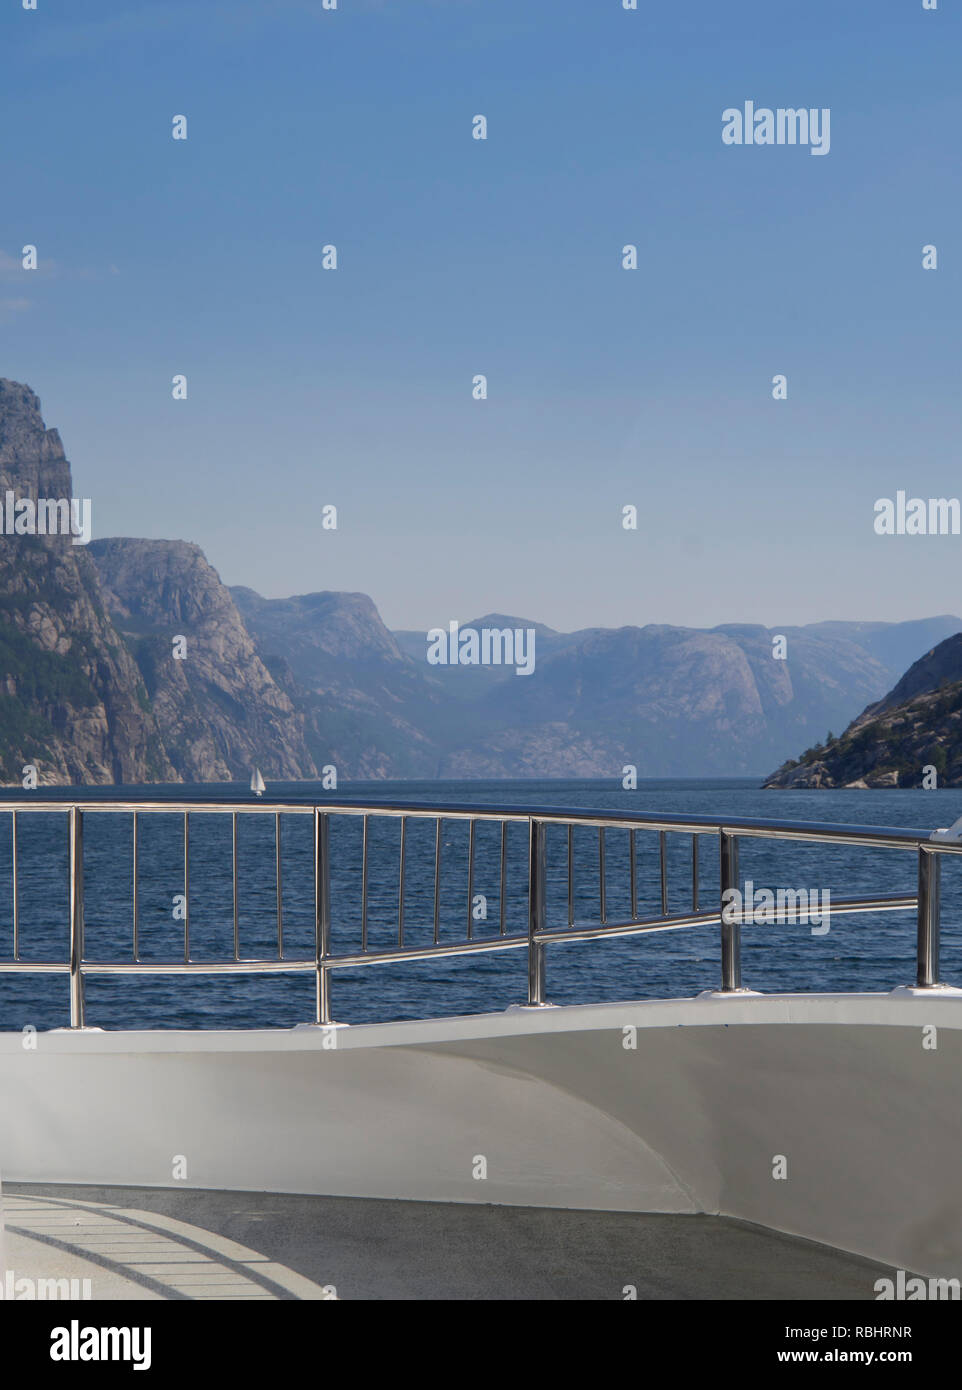 A one day fjord cruise in Lysefjorden east of Stavanger Norway, spectacular views of steep mountainsides from the front deck - Stock Image